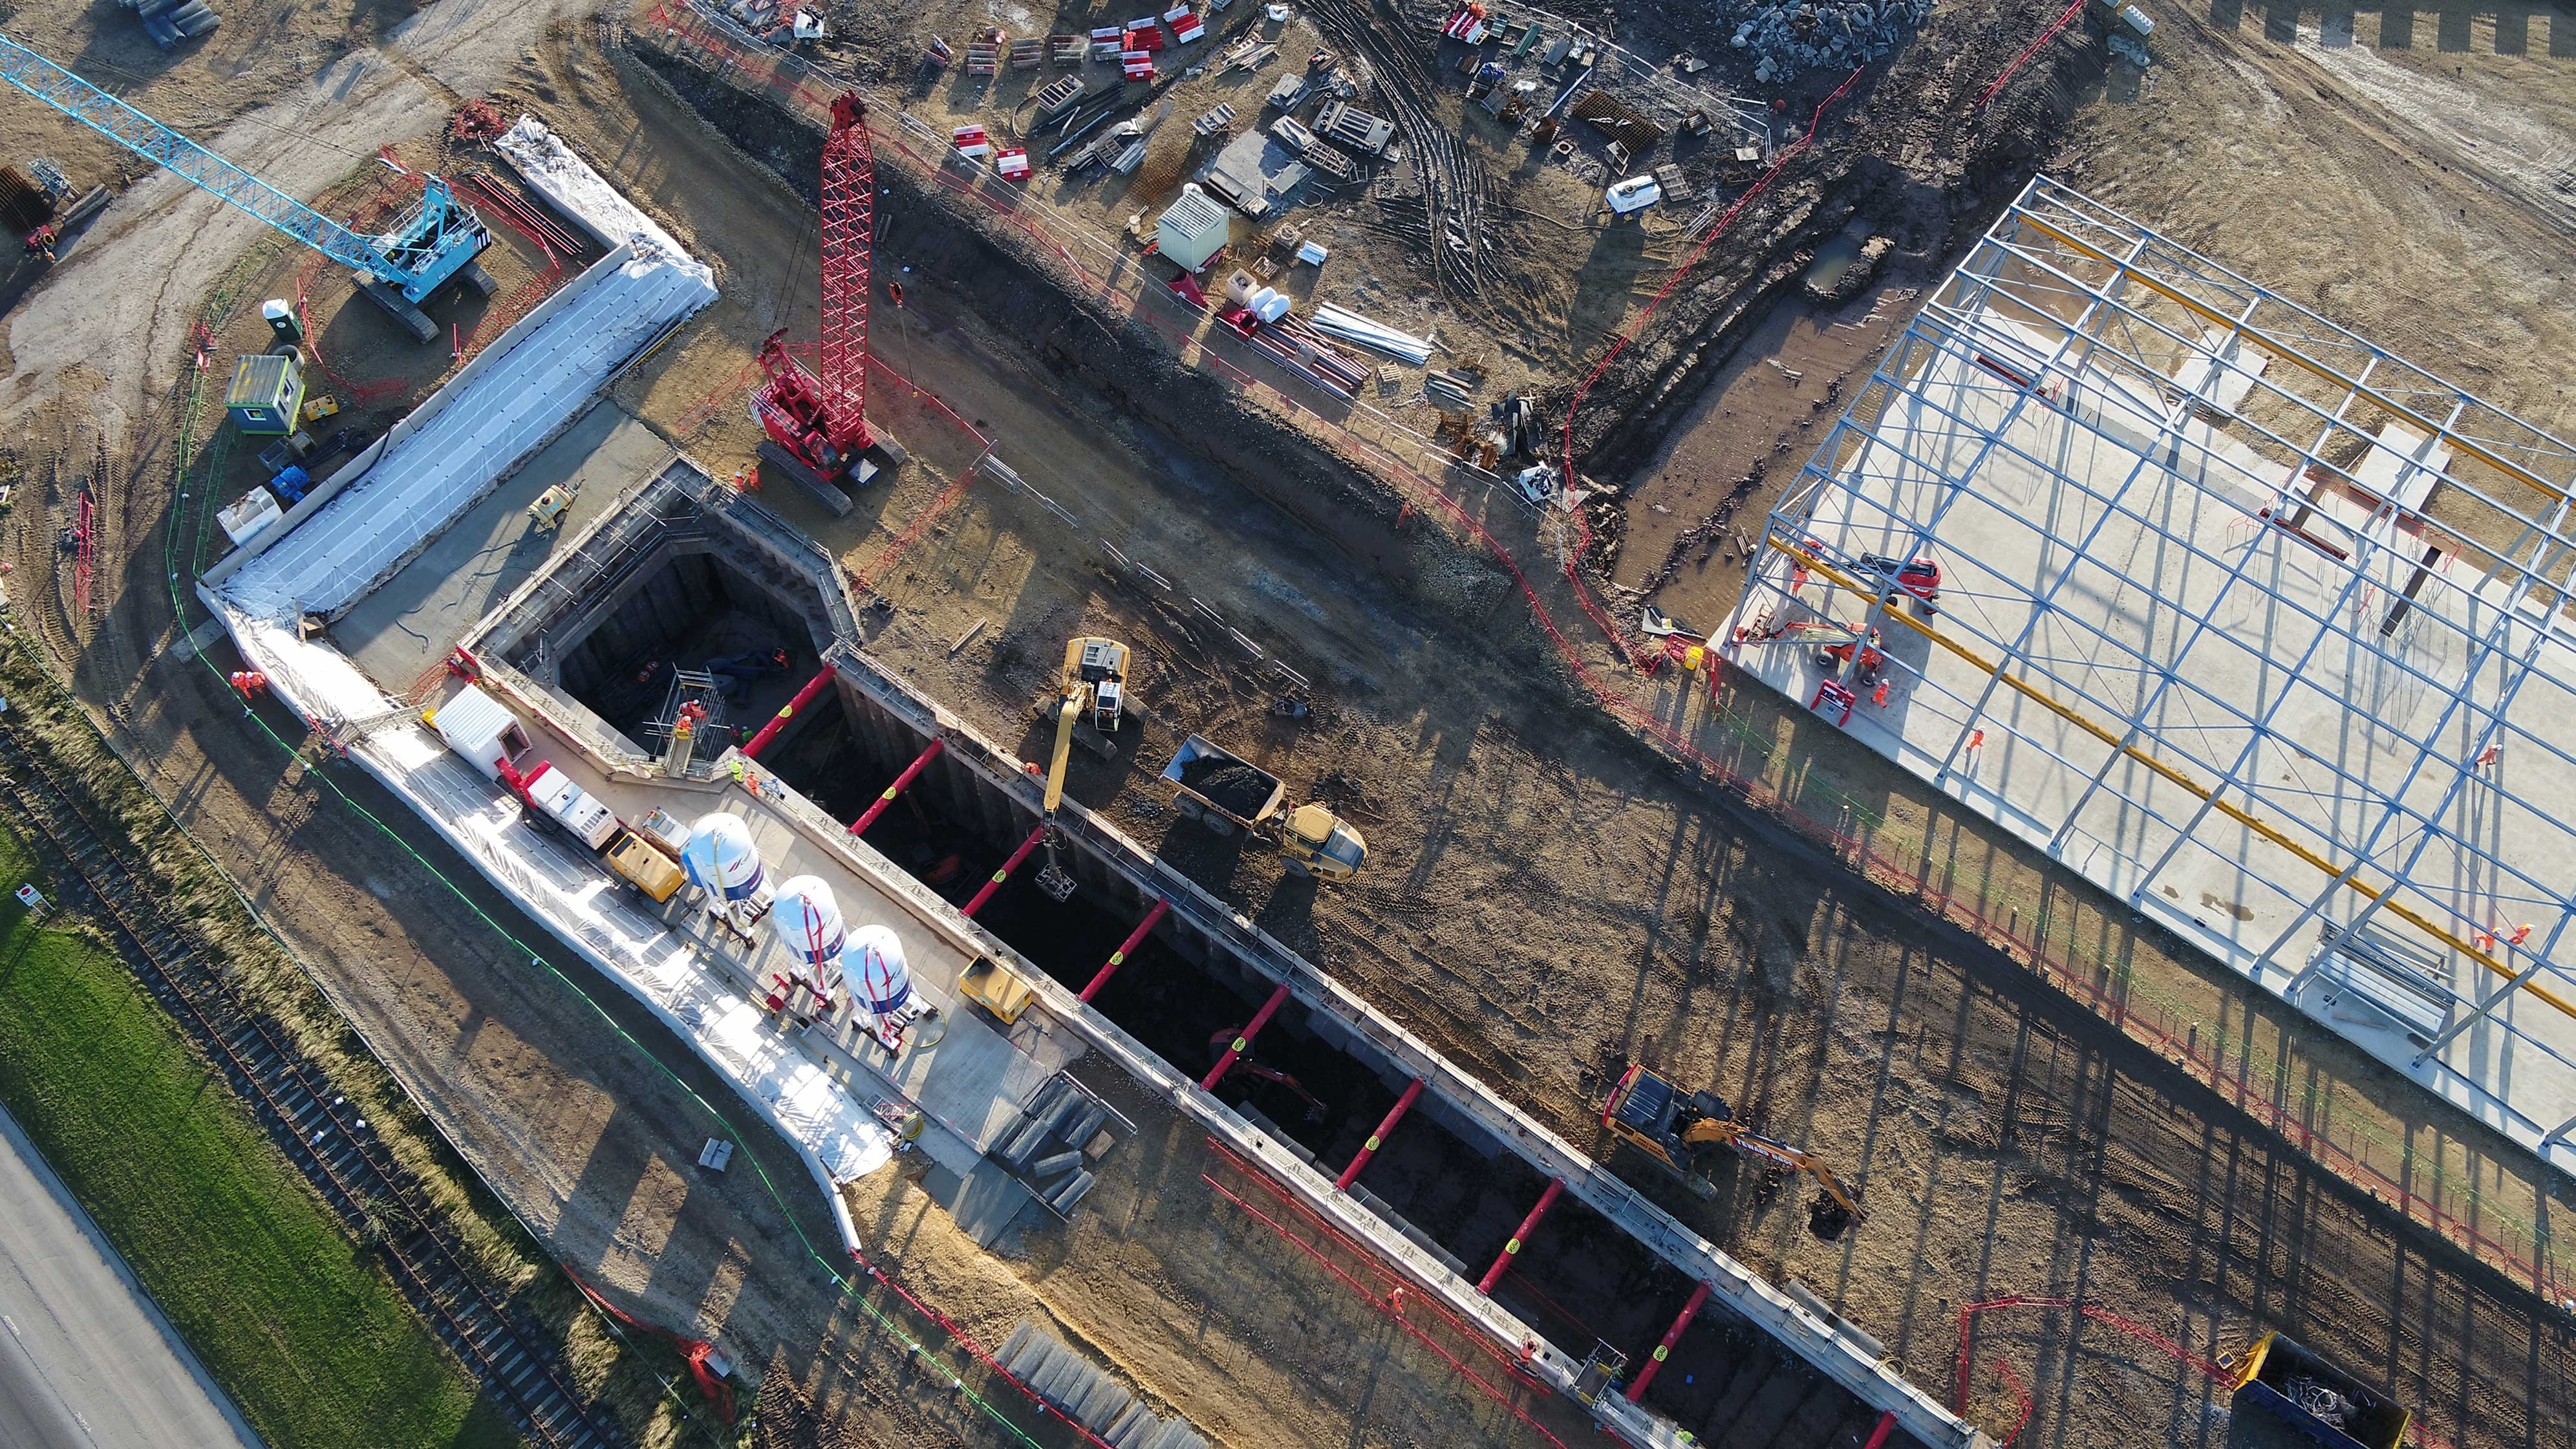 Aerial footage of major work site with large excavation